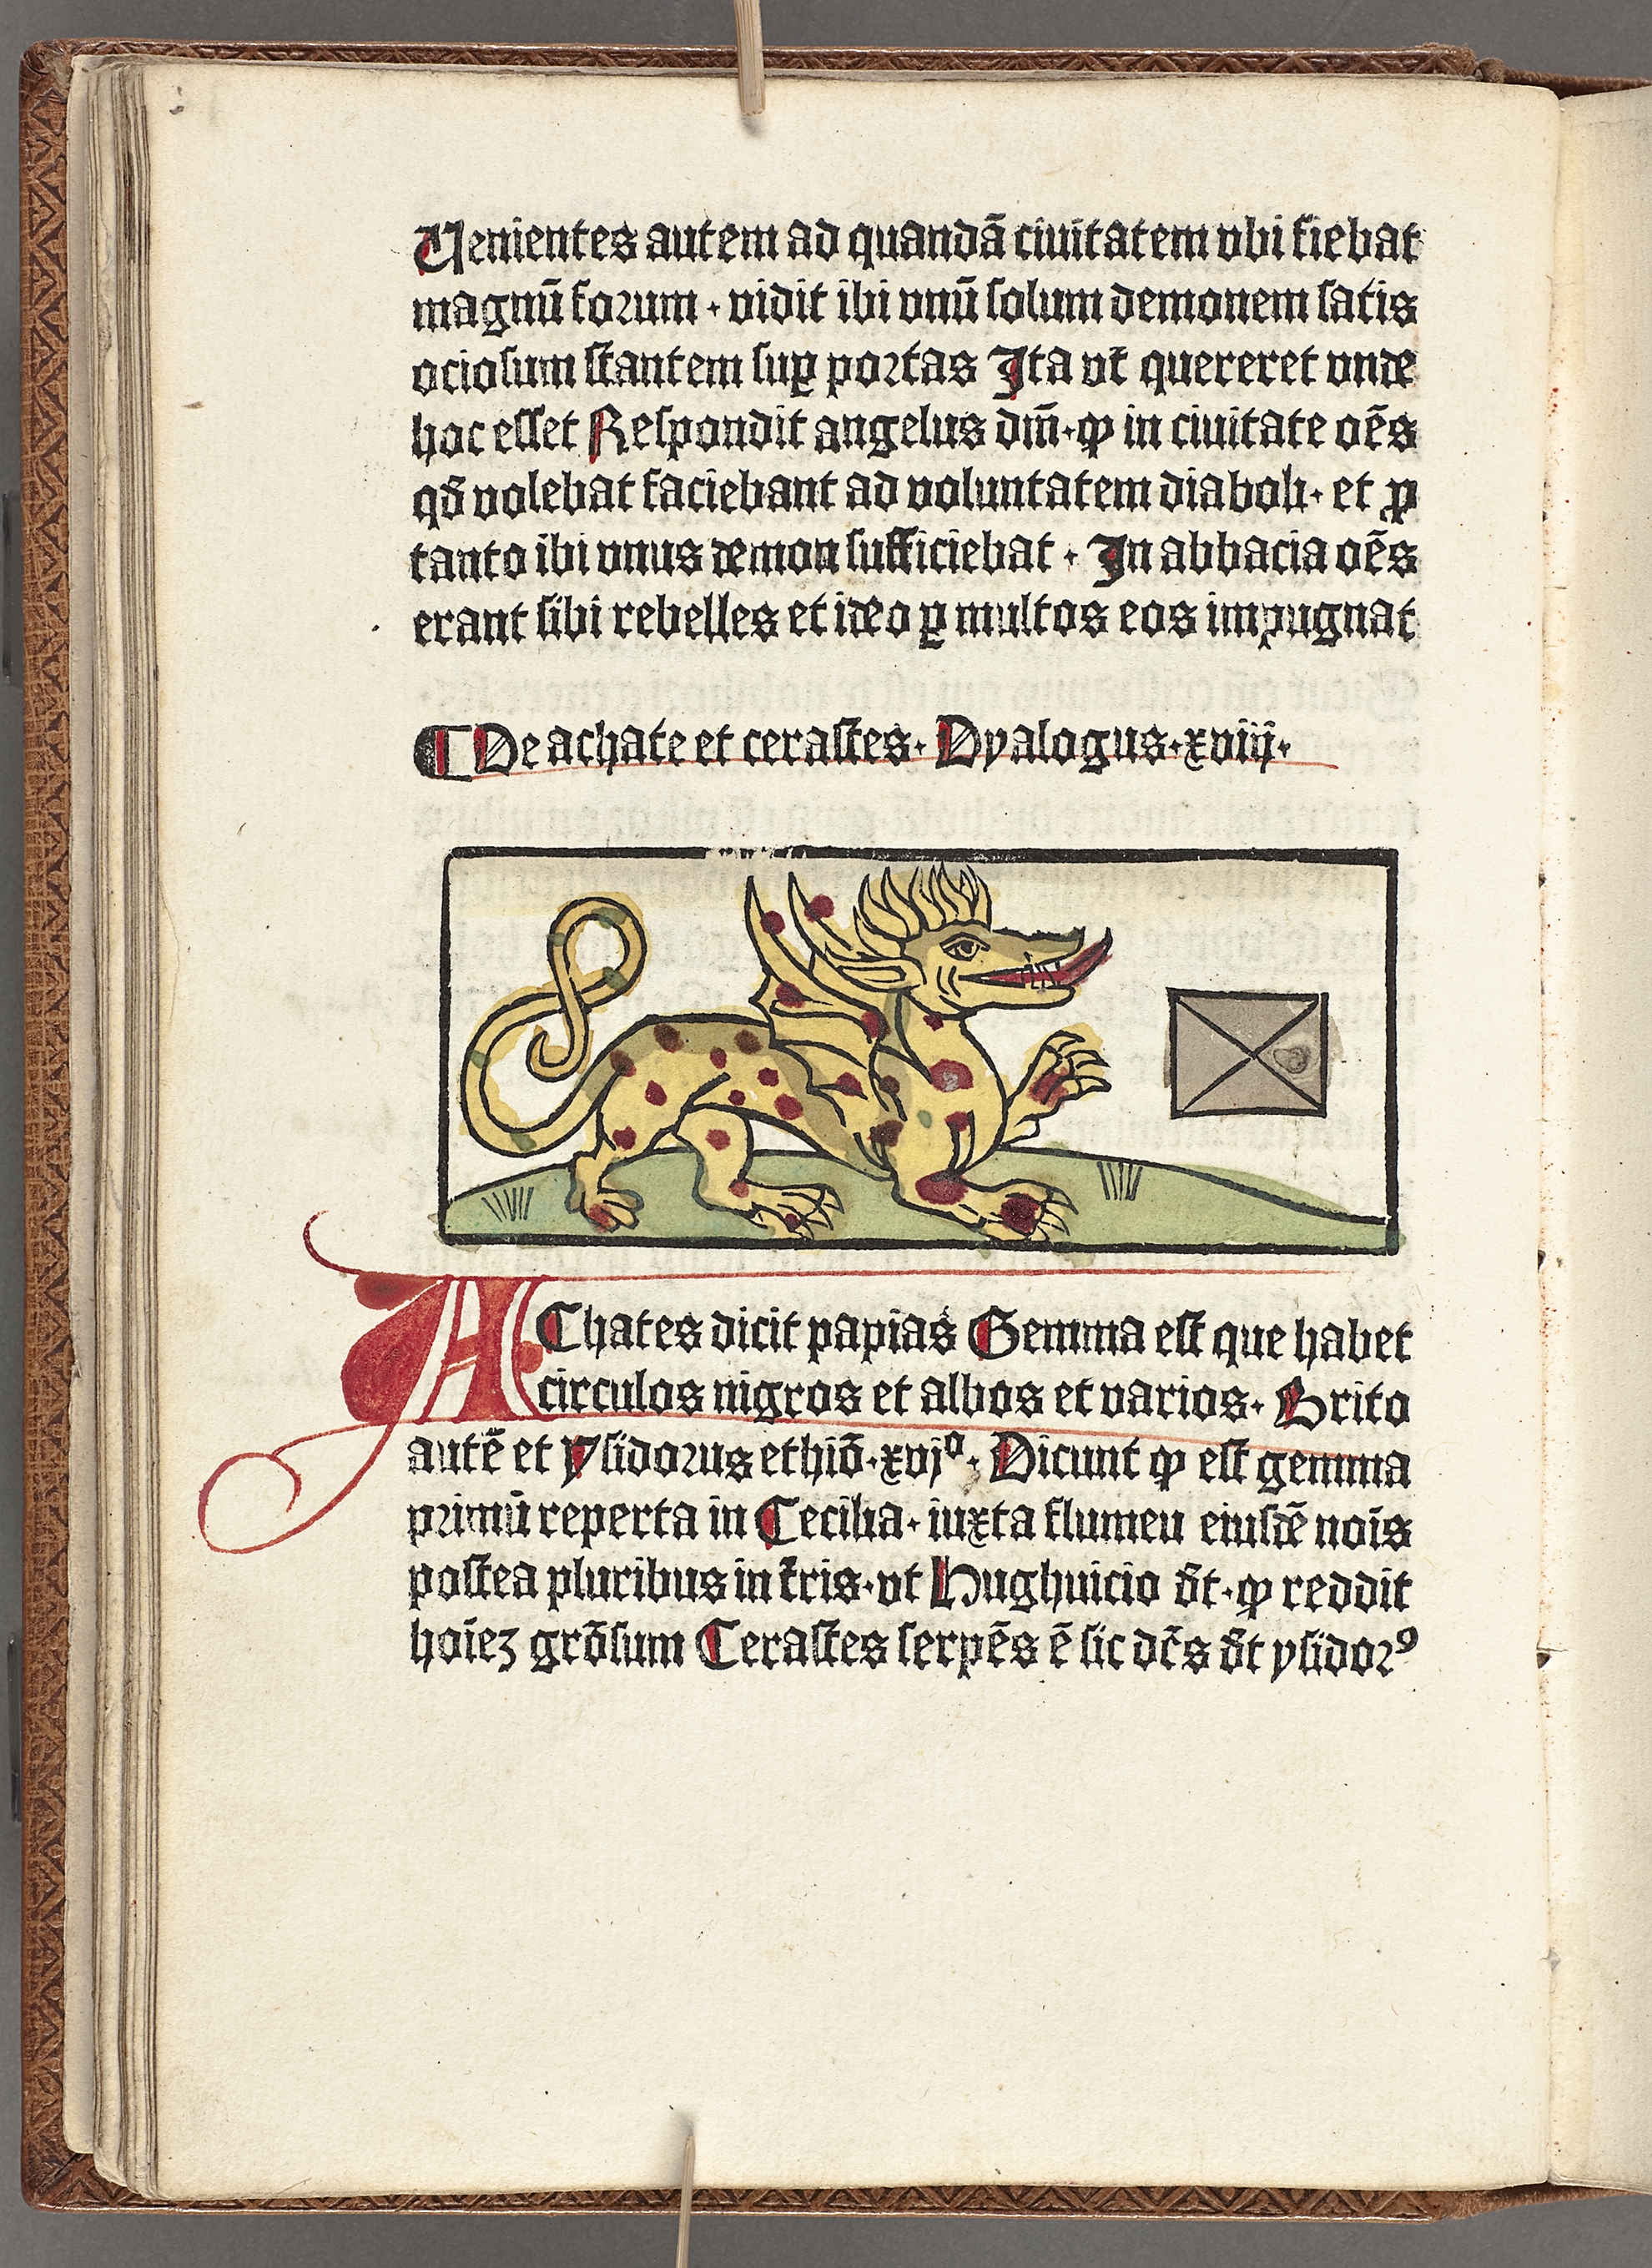 Old book page with gothic writing. In the middle is a dragon with his tongue outside his mouth.